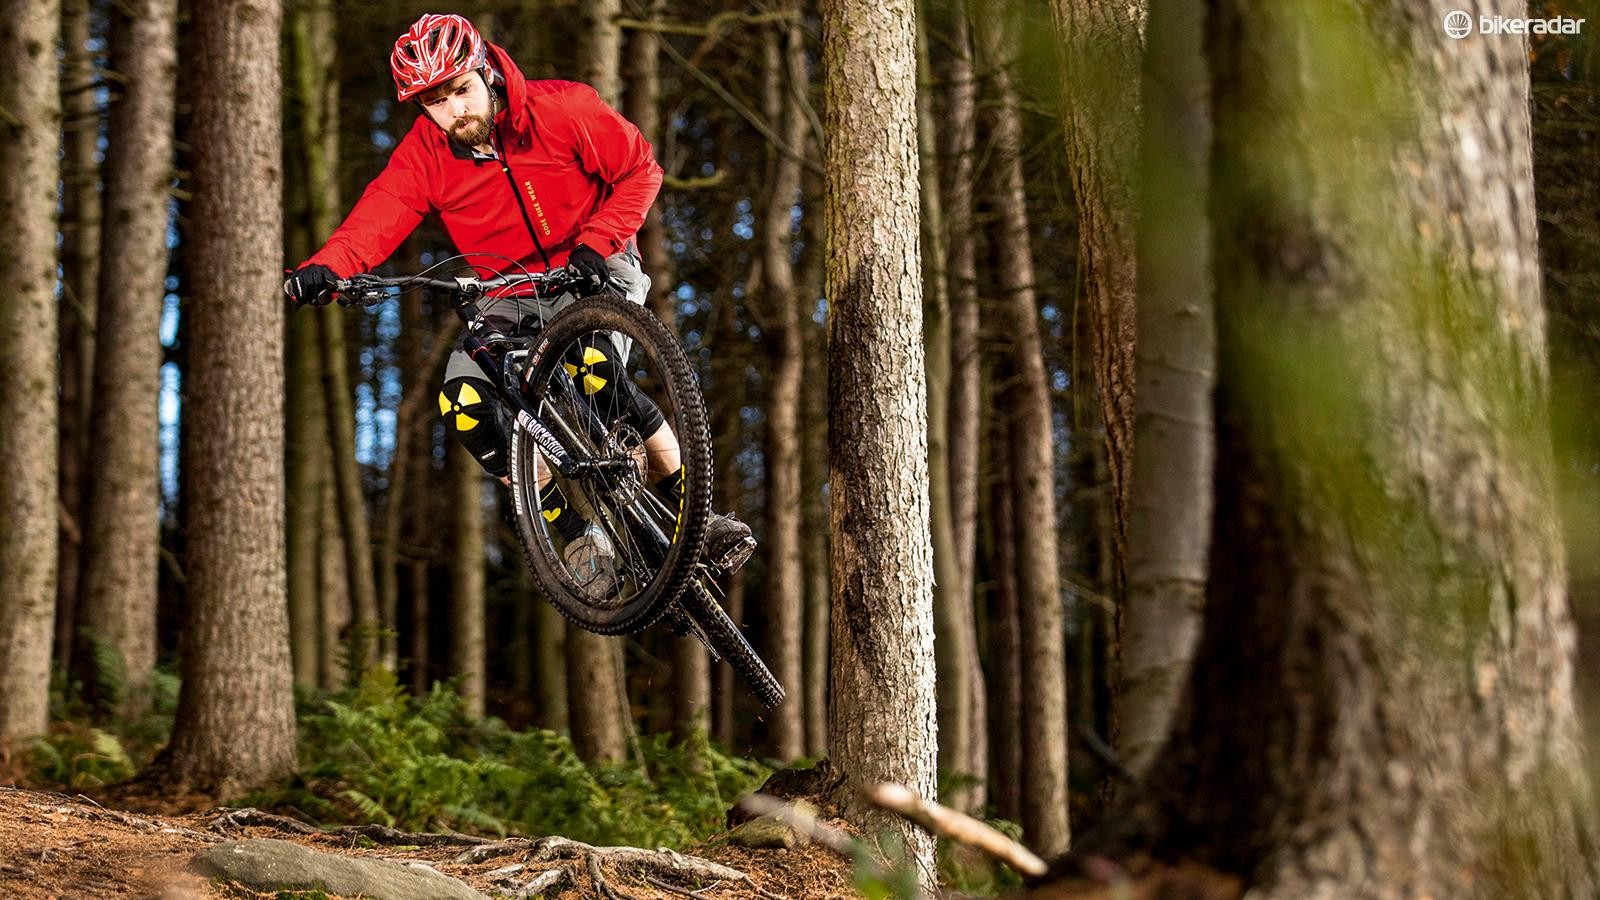 It handles hits and techy descents impressively